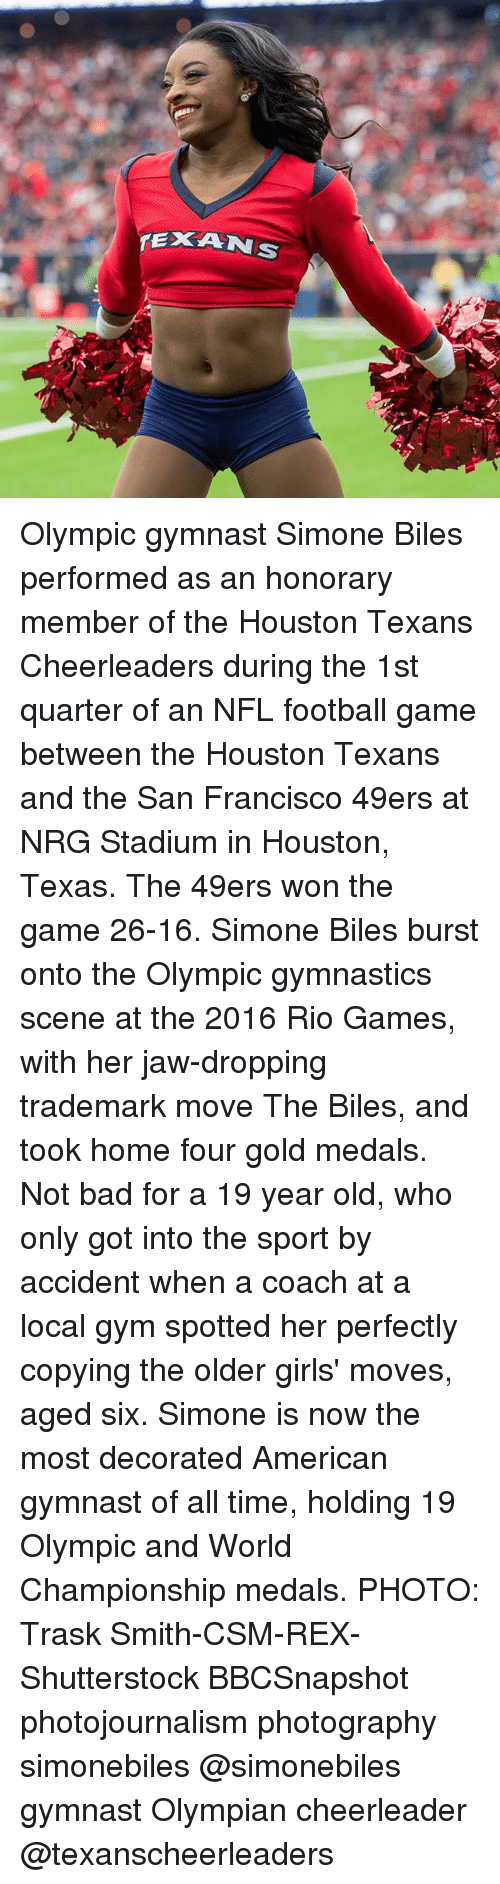 Nfl Football: Olympic gymnast Simone Biles performed as an honorary member of the Houston Texans Cheerleaders during the 1st quarter of an NFL football game between the Houston Texans and the San Francisco 49ers at NRG Stadium in Houston, Texas. The 49ers won the game 26-16. Simone Biles burst onto the Olympic gymnastics scene at the 2016 Rio Games, with her jaw-dropping trademark move The Biles, and took home four gold medals. Not bad for a 19 year old, who only got into the sport by accident when a coach at a local gym spotted her perfectly copying the older girls' moves, aged six. Simone is now the most decorated American gymnast of all time, holding 19 Olympic and World Championship medals. PHOTO: Trask Smith-CSM-REX-Shutterstock BBCSnapshot photojournalism photography simonebiles @simonebiles gymnast Olympian cheerleader @texanscheerleaders